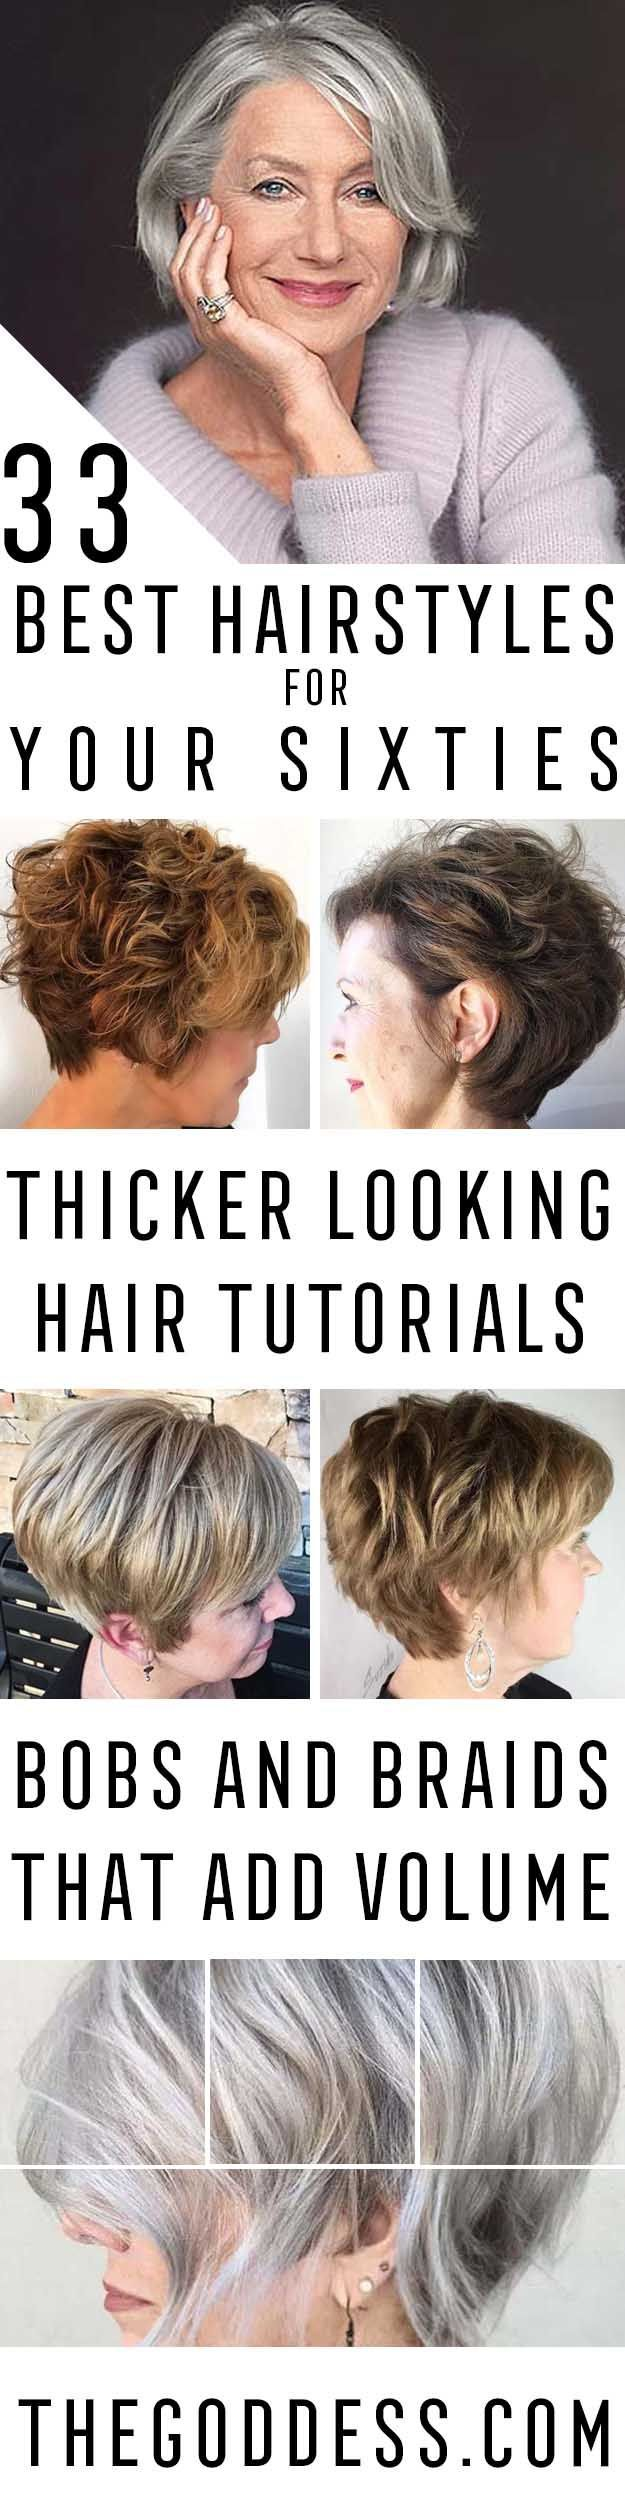 Best Hairstyles For Your 60s - Best Haircuts For Women In Their 60s With Short O...